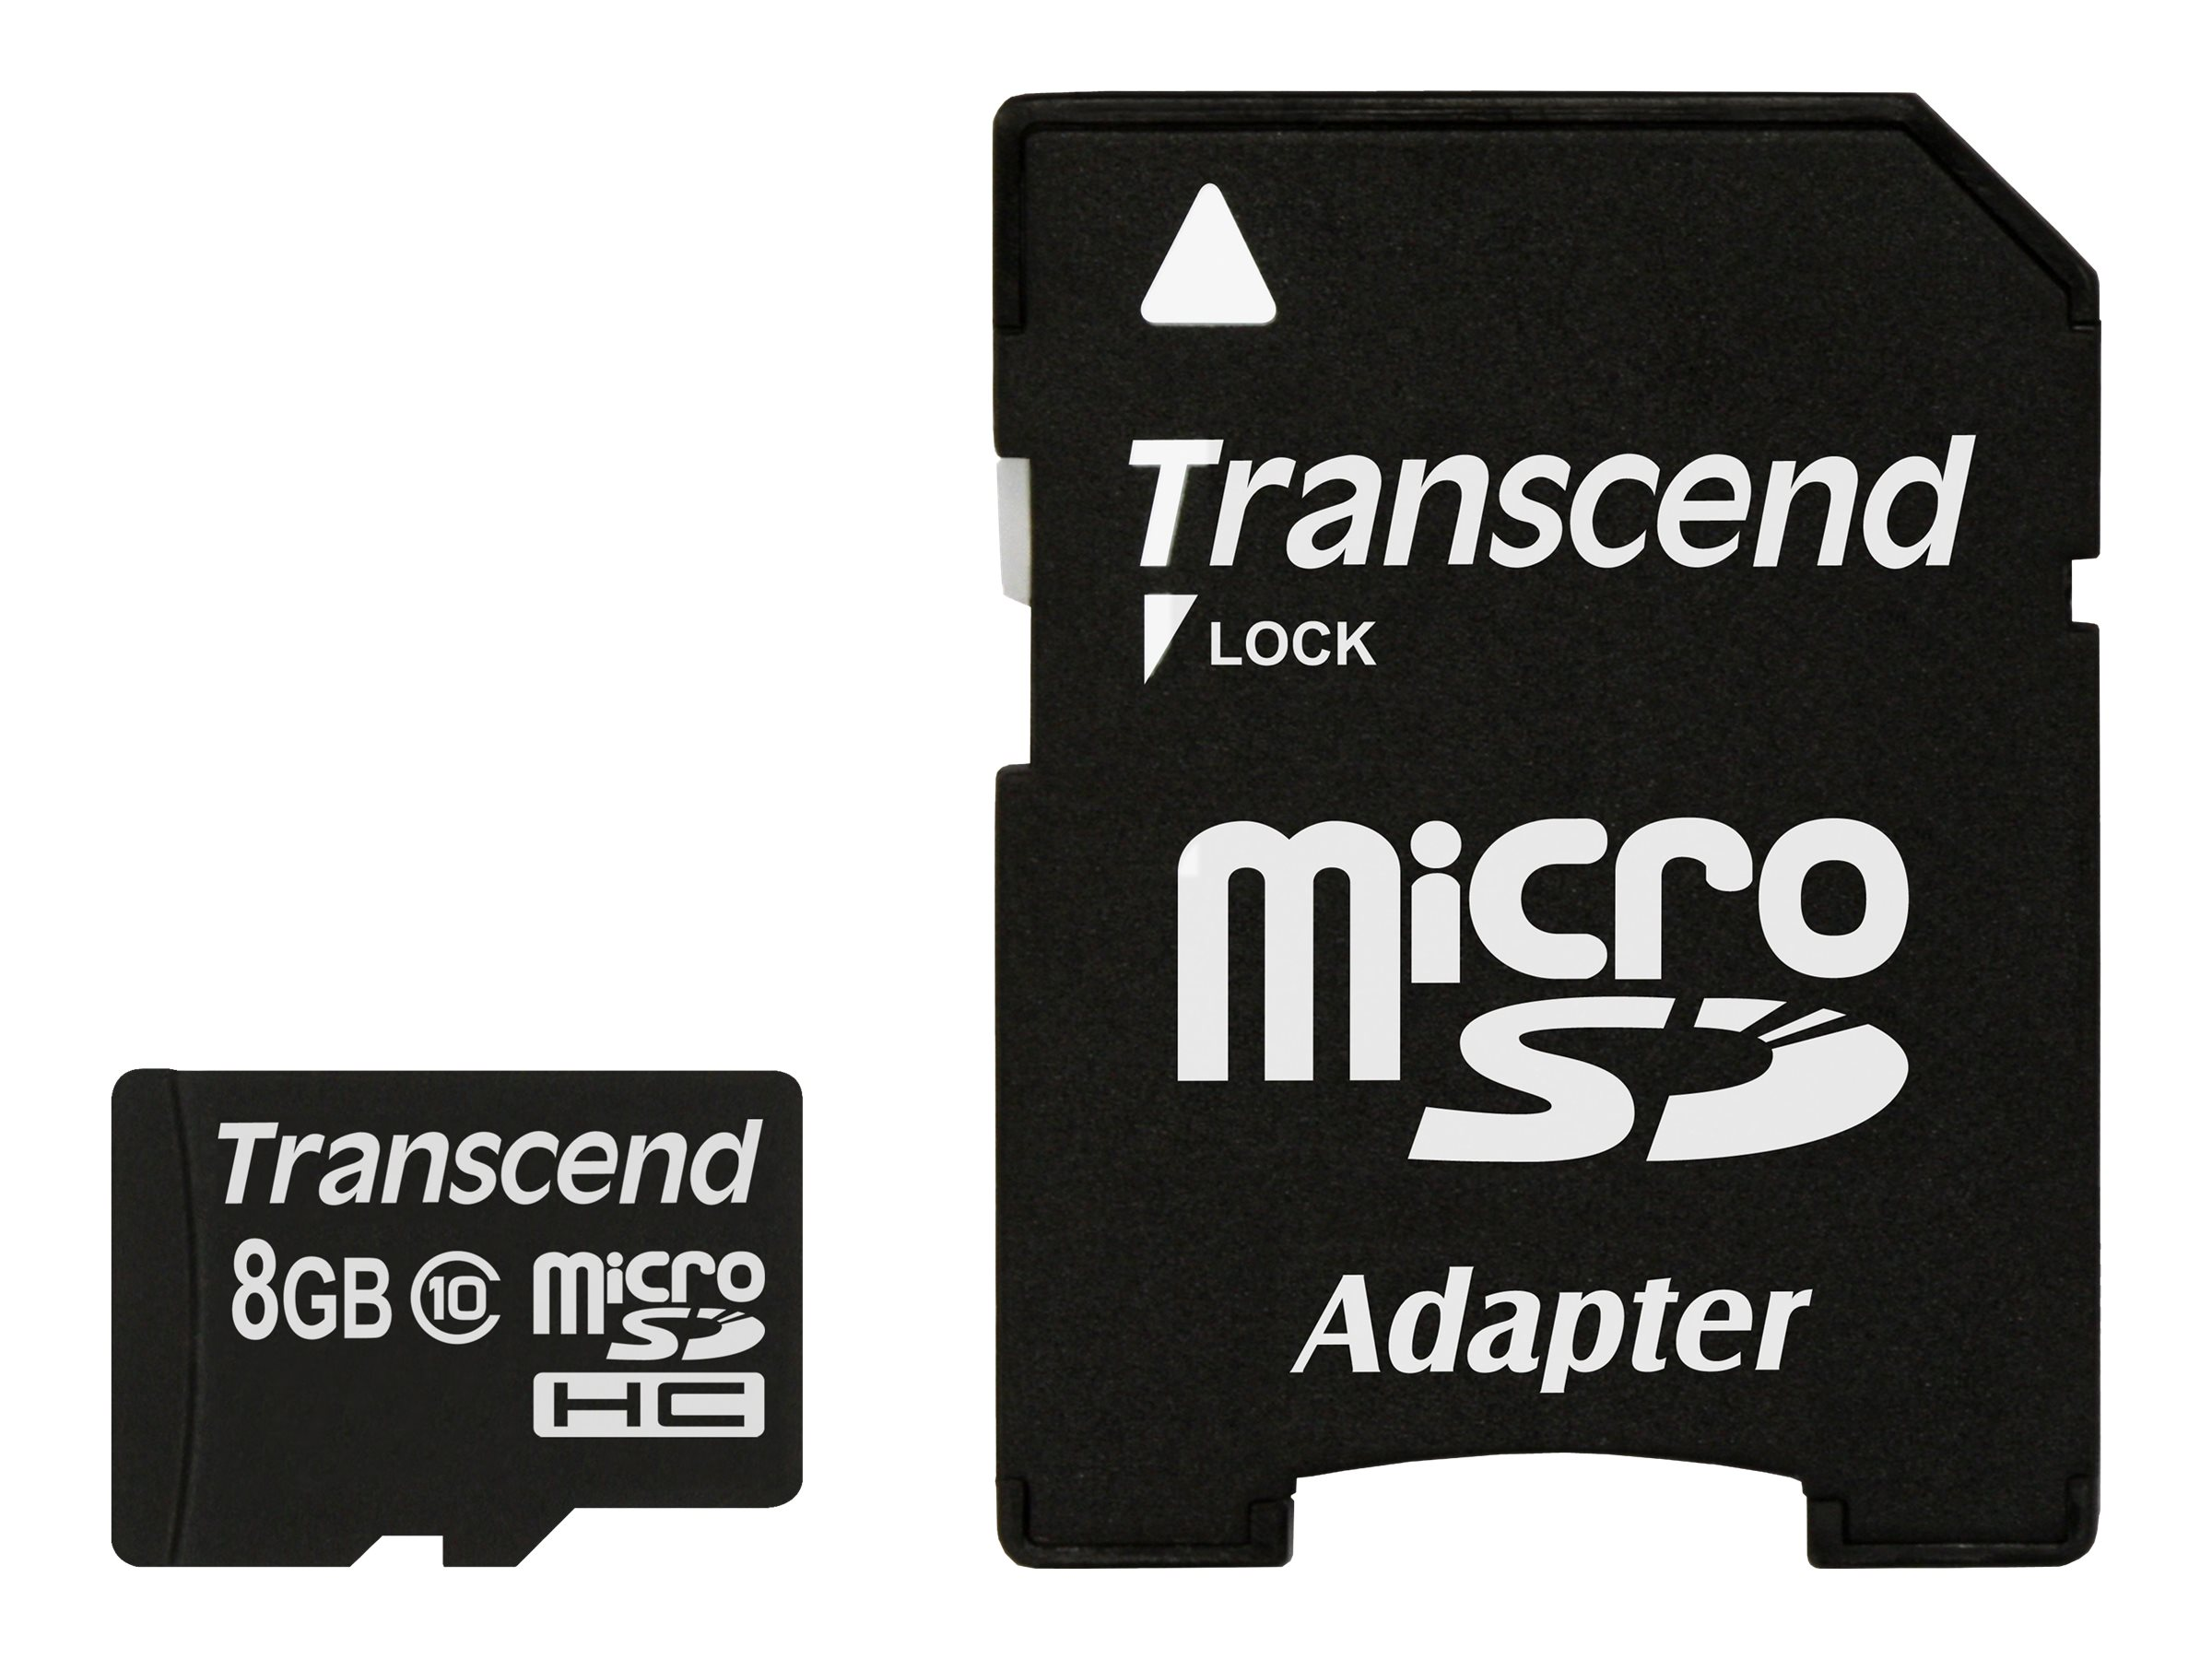 Transcend Premium - carte mémoire flash - 8 Go - microSDHC